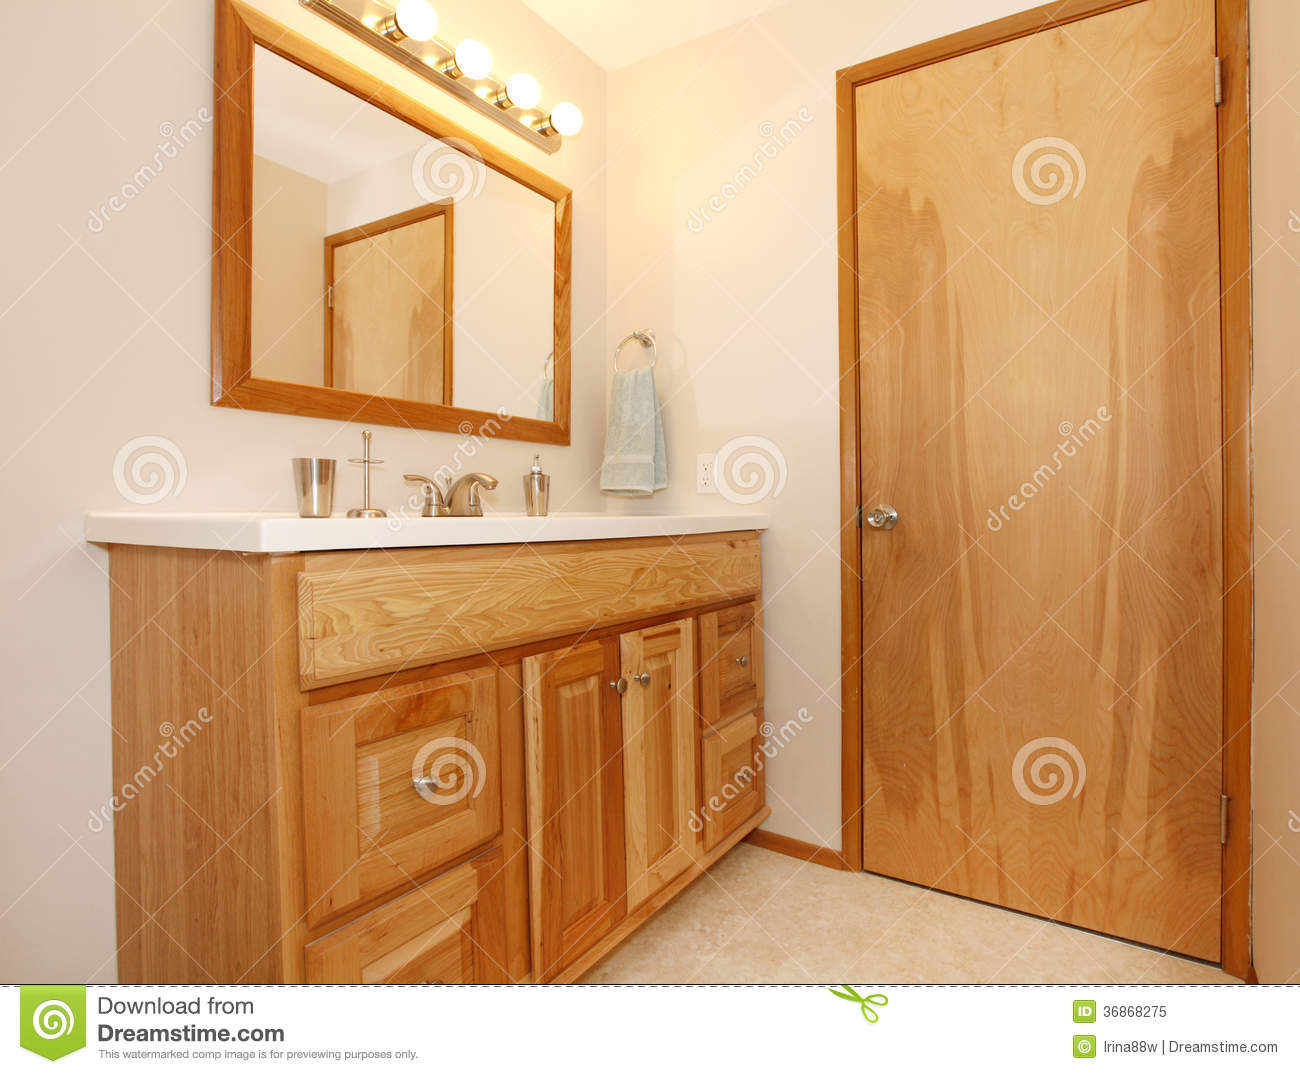 honey wooden bathroom cabinets royalty free stock photo image